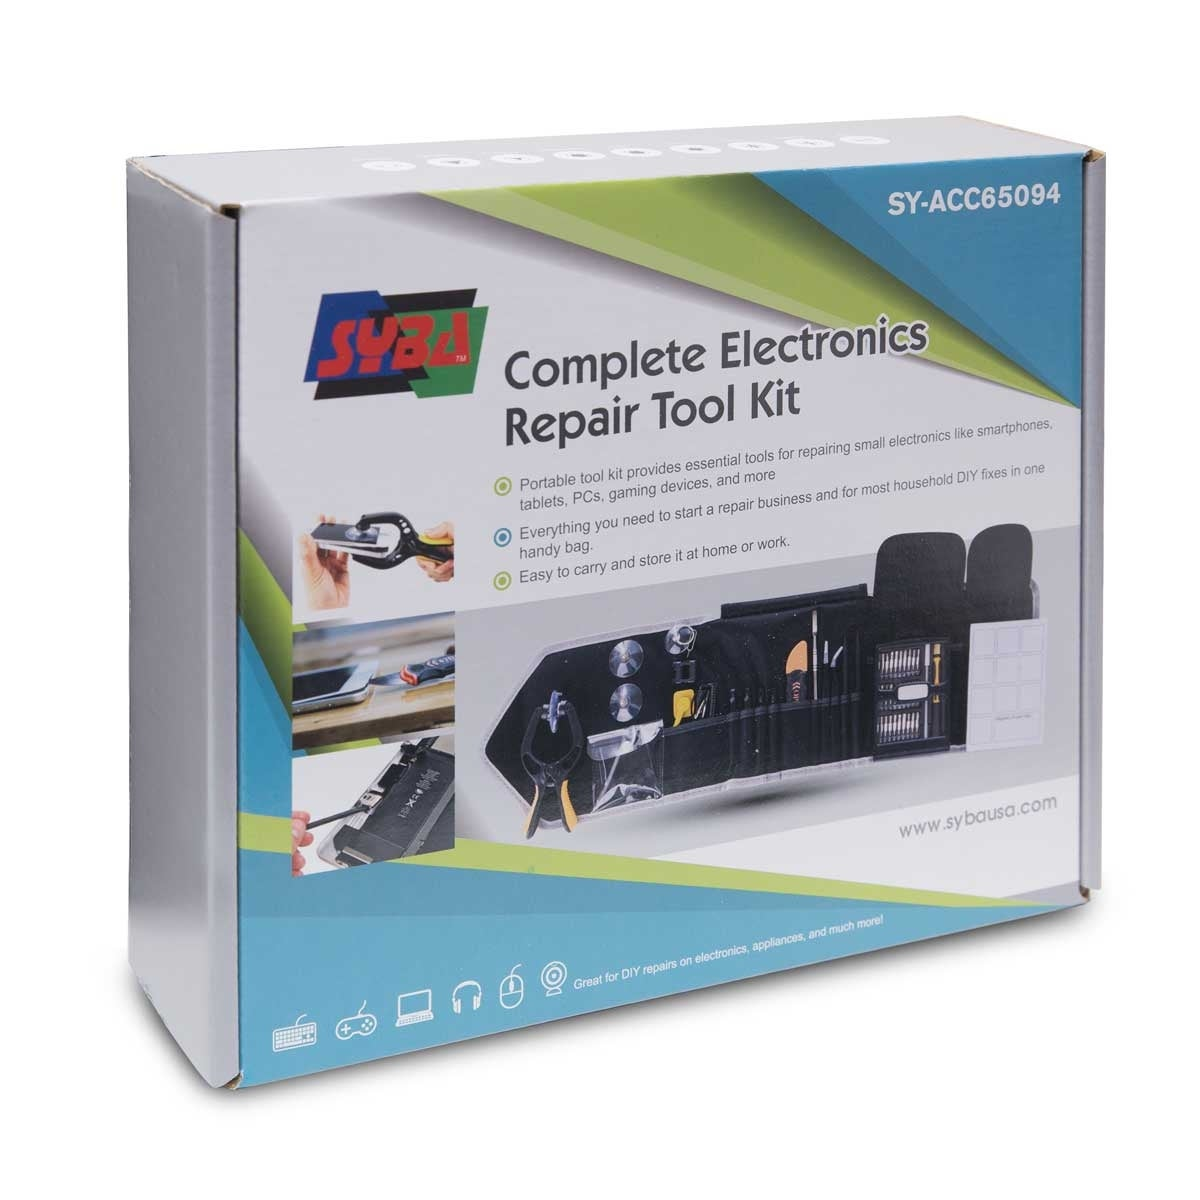 Complete Essential Electronic Repair Tool Kit  Repair electronics devices  from mobile phones to laptop